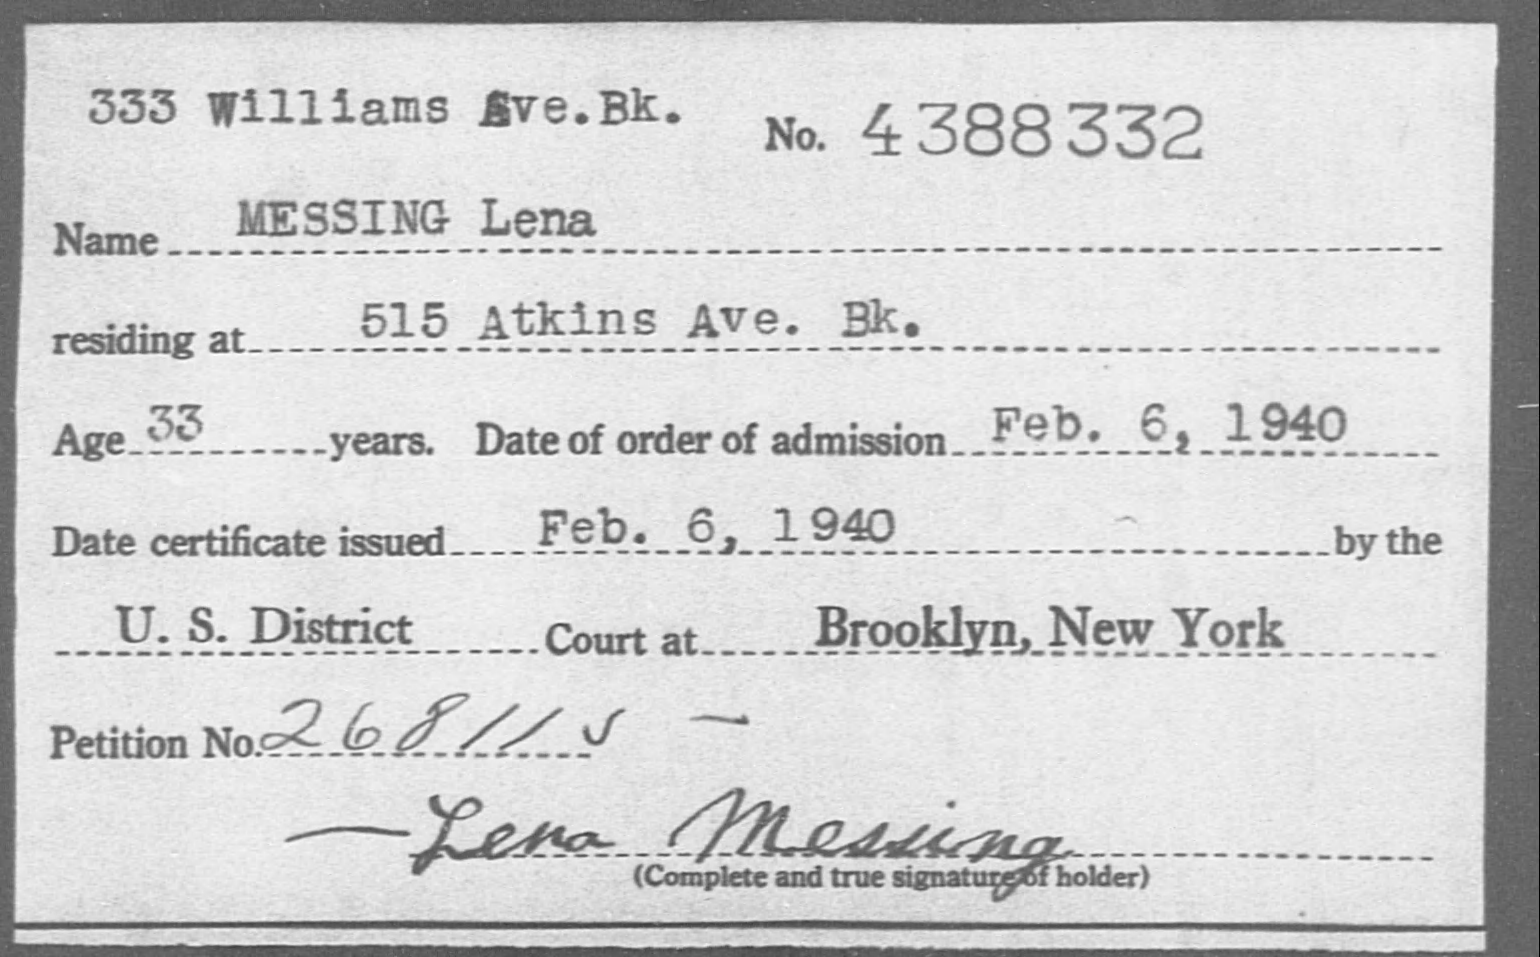 MESSING Lena - Born: [BLANK], Naturalized: 1940